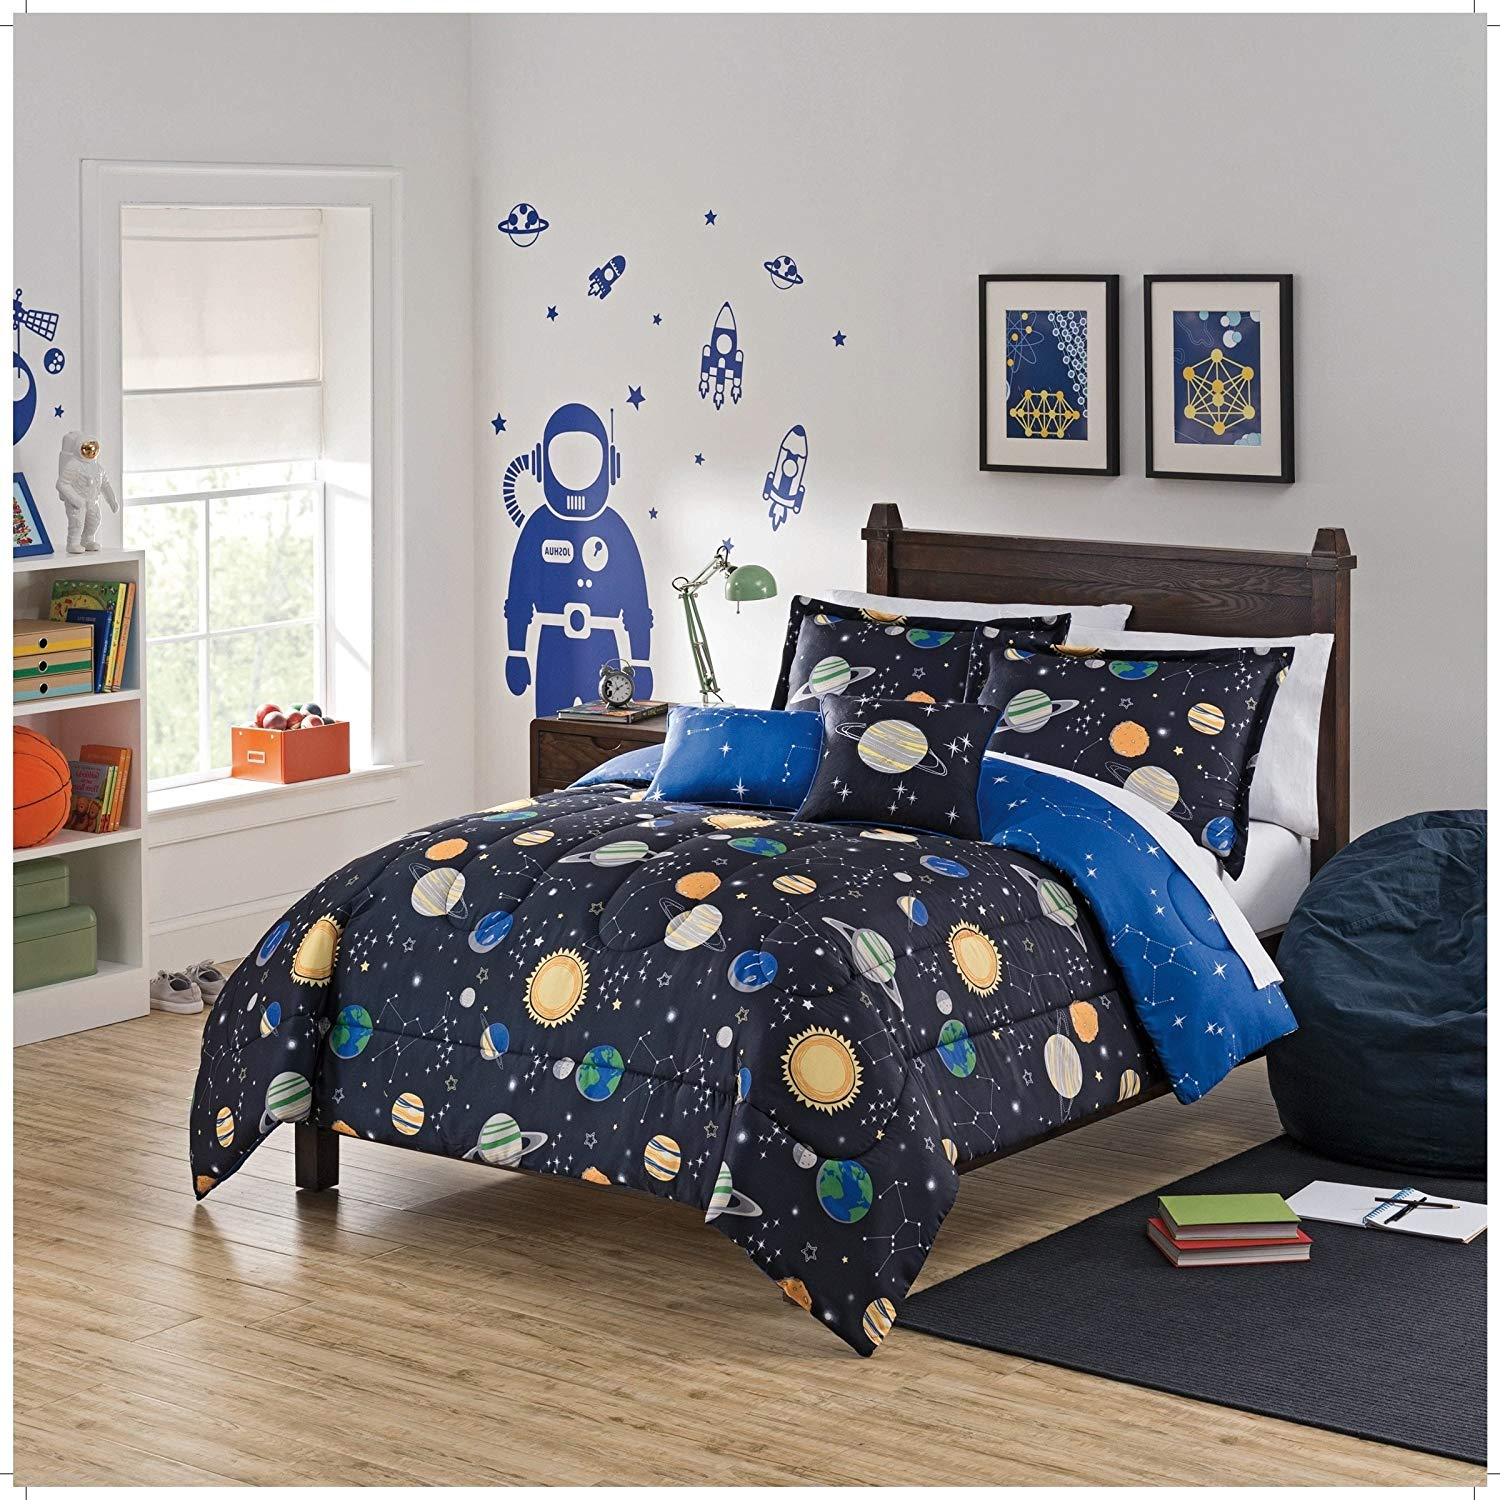 Cheap Kids Bedroom Set Find Kids Bedroom Set Deals On Line At Alibaba Com